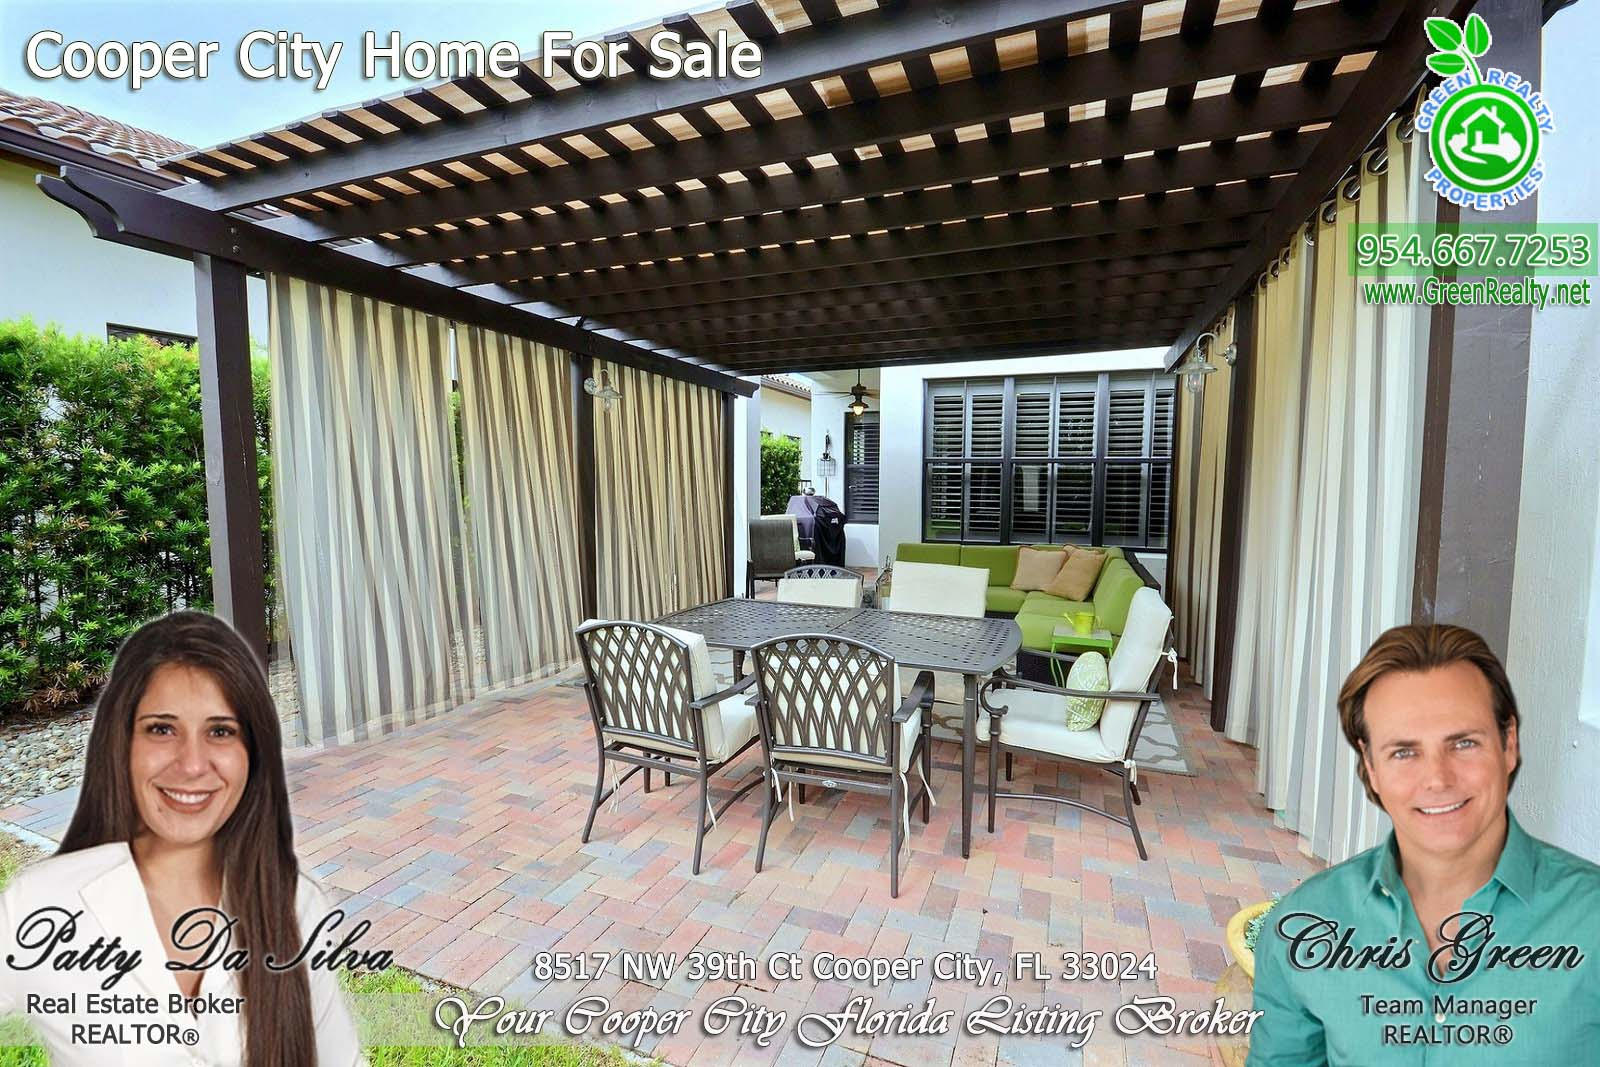 42Monterra Cooper City Homes For Sale (1)